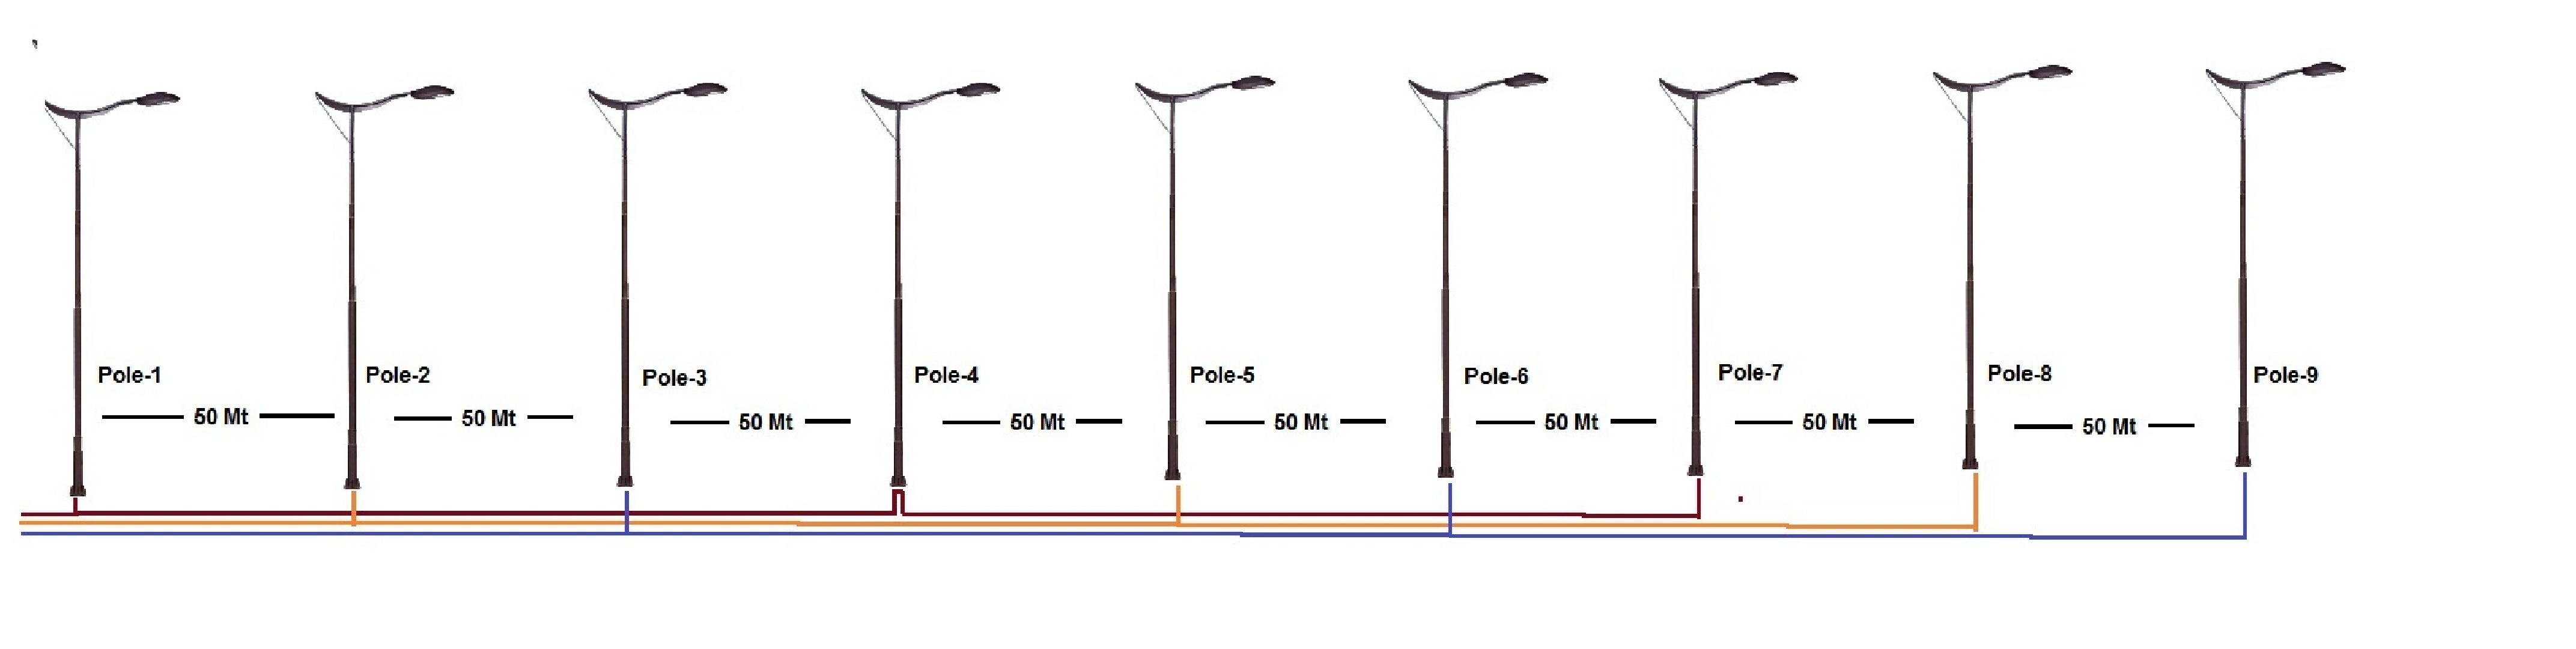 Voltage Drop Formula For Landscape Lighting : Calculate cable voltage drop for street light pole